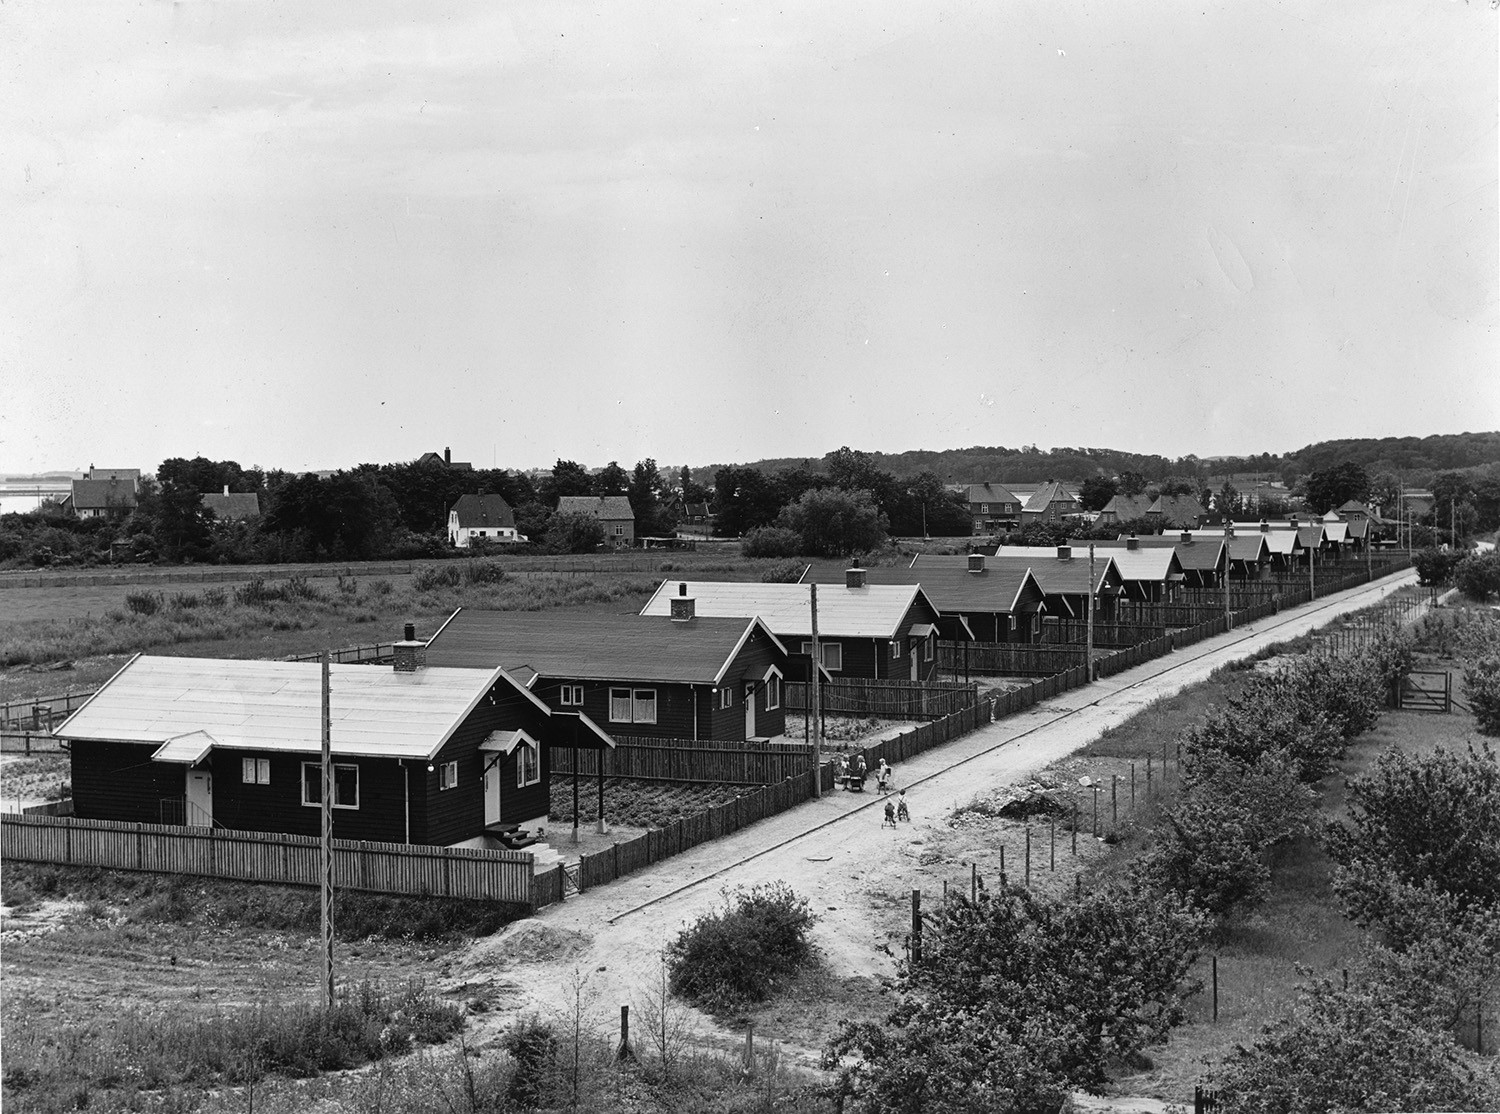 A black and white photo of a street with Puutalo Oy's detached houses on adjacent fenced plots.